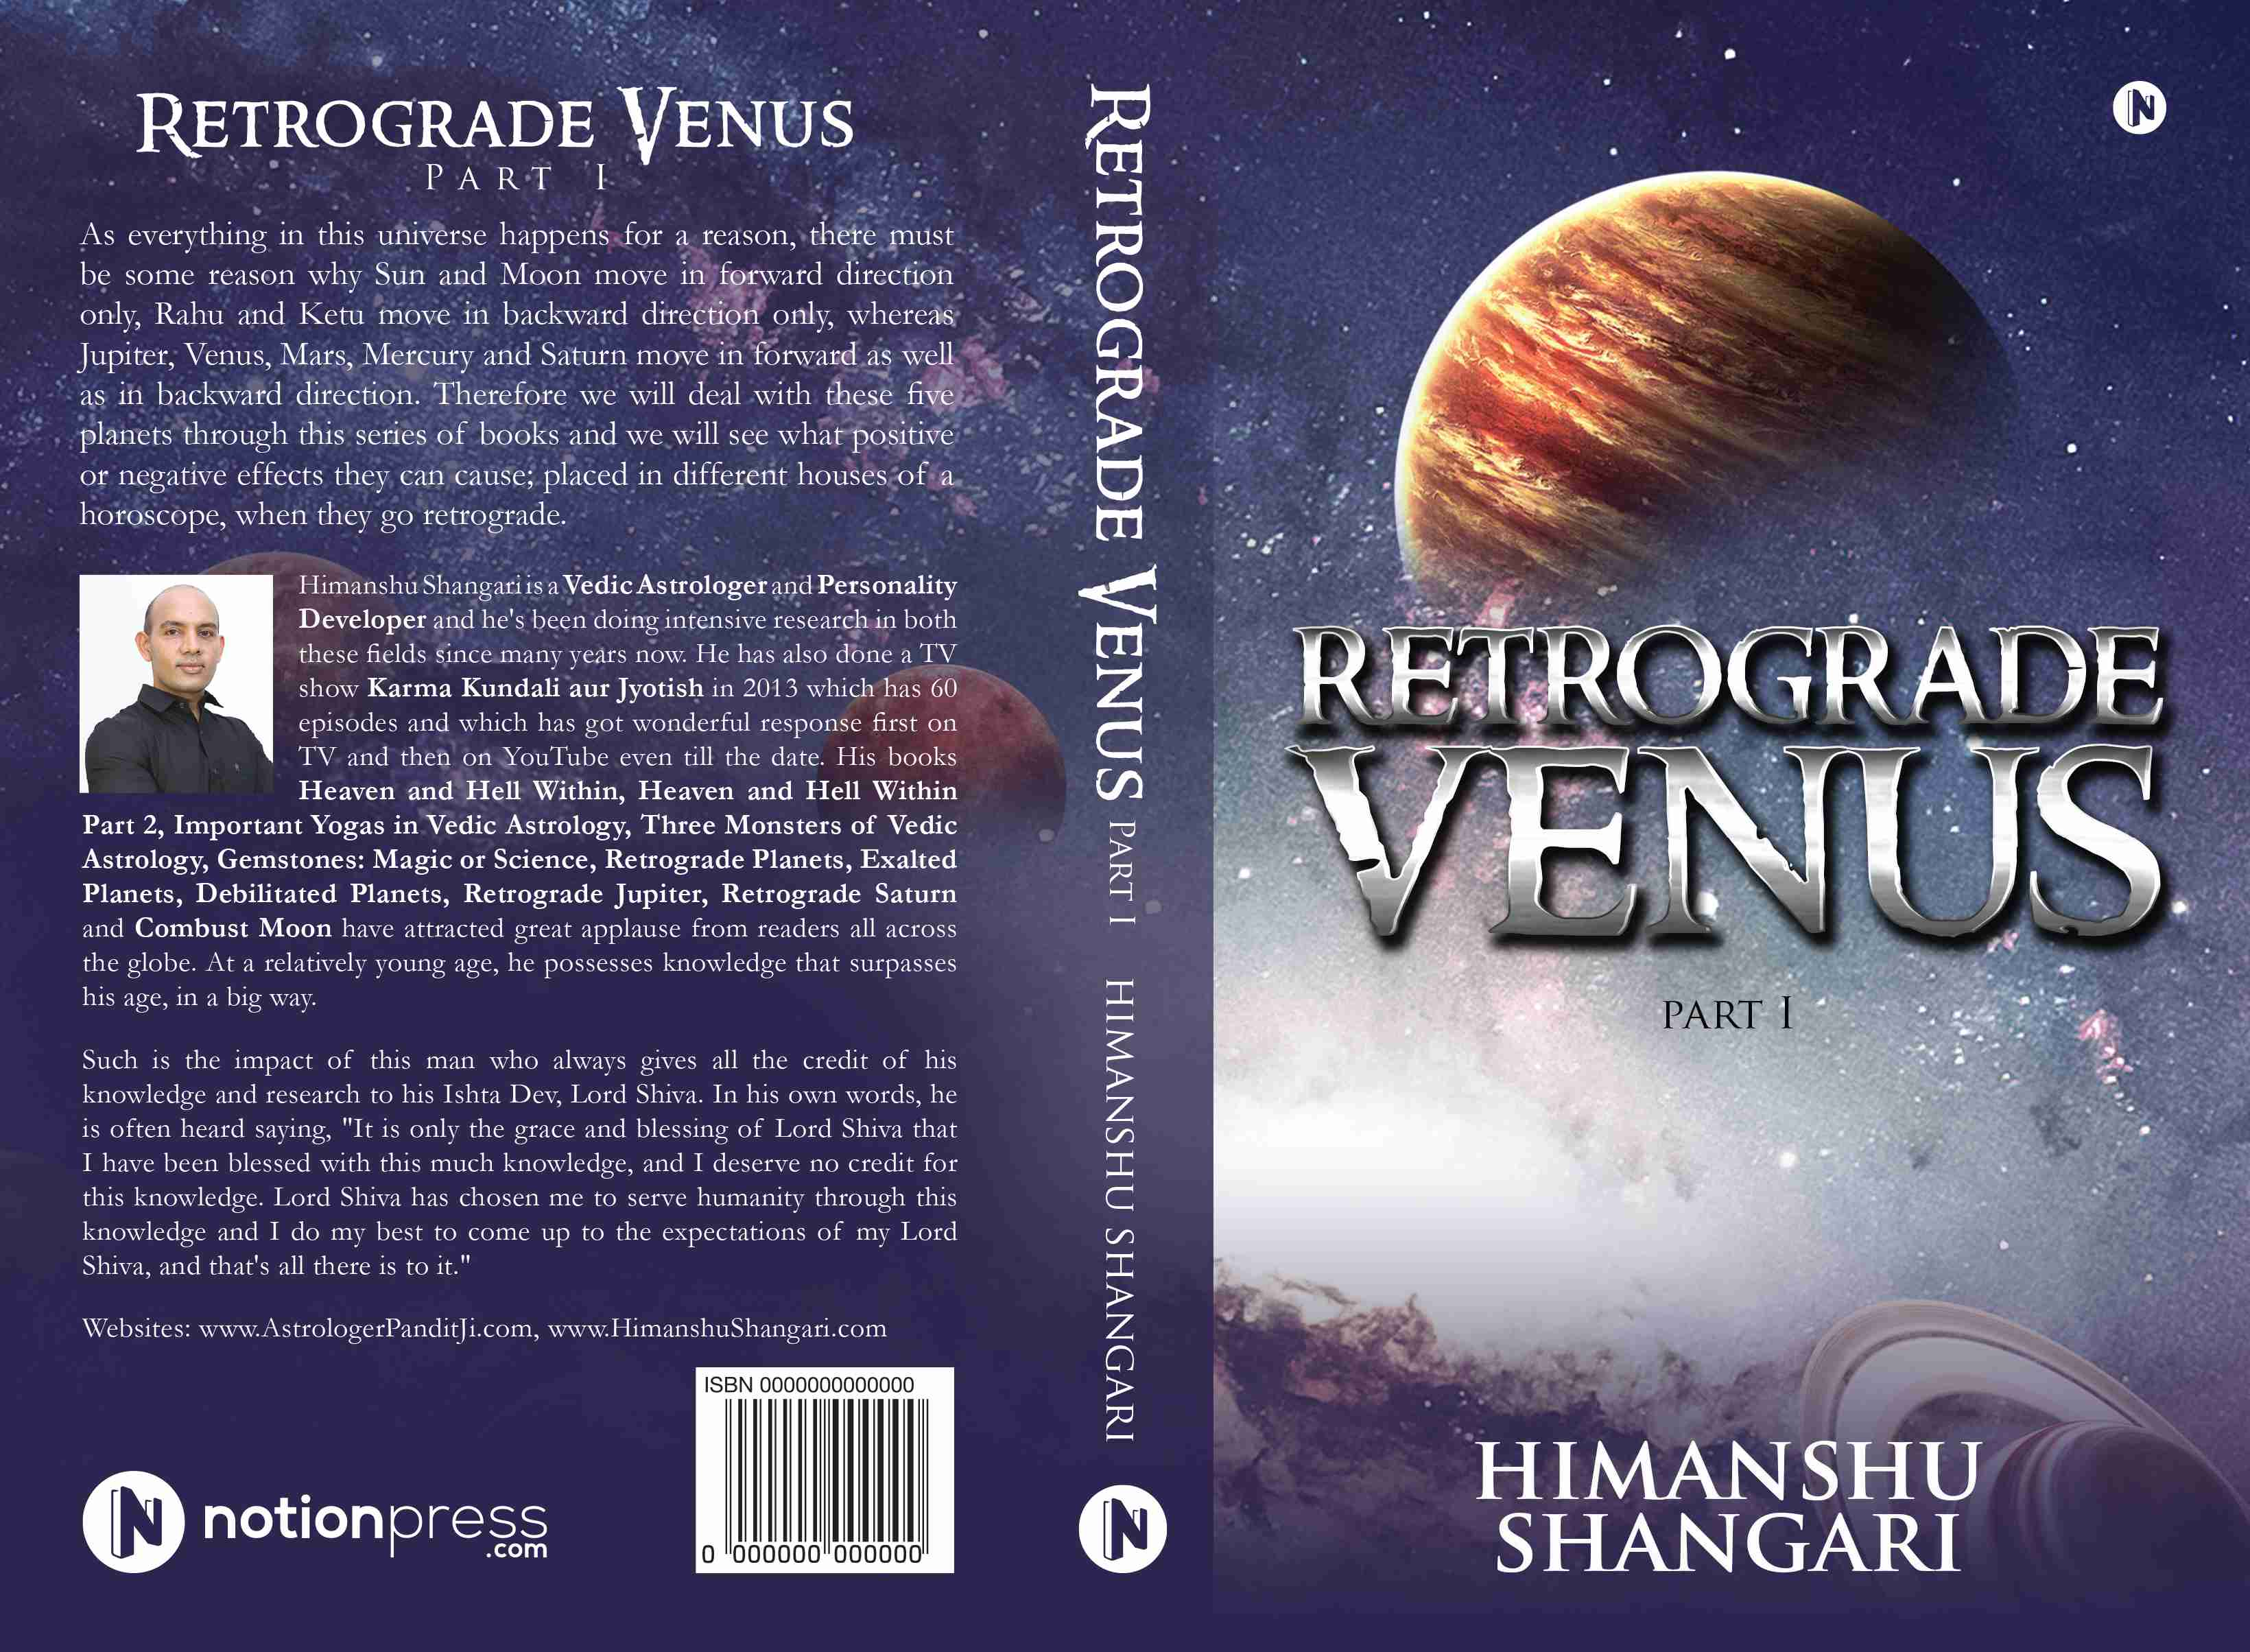 Retrograde Venus Part 1